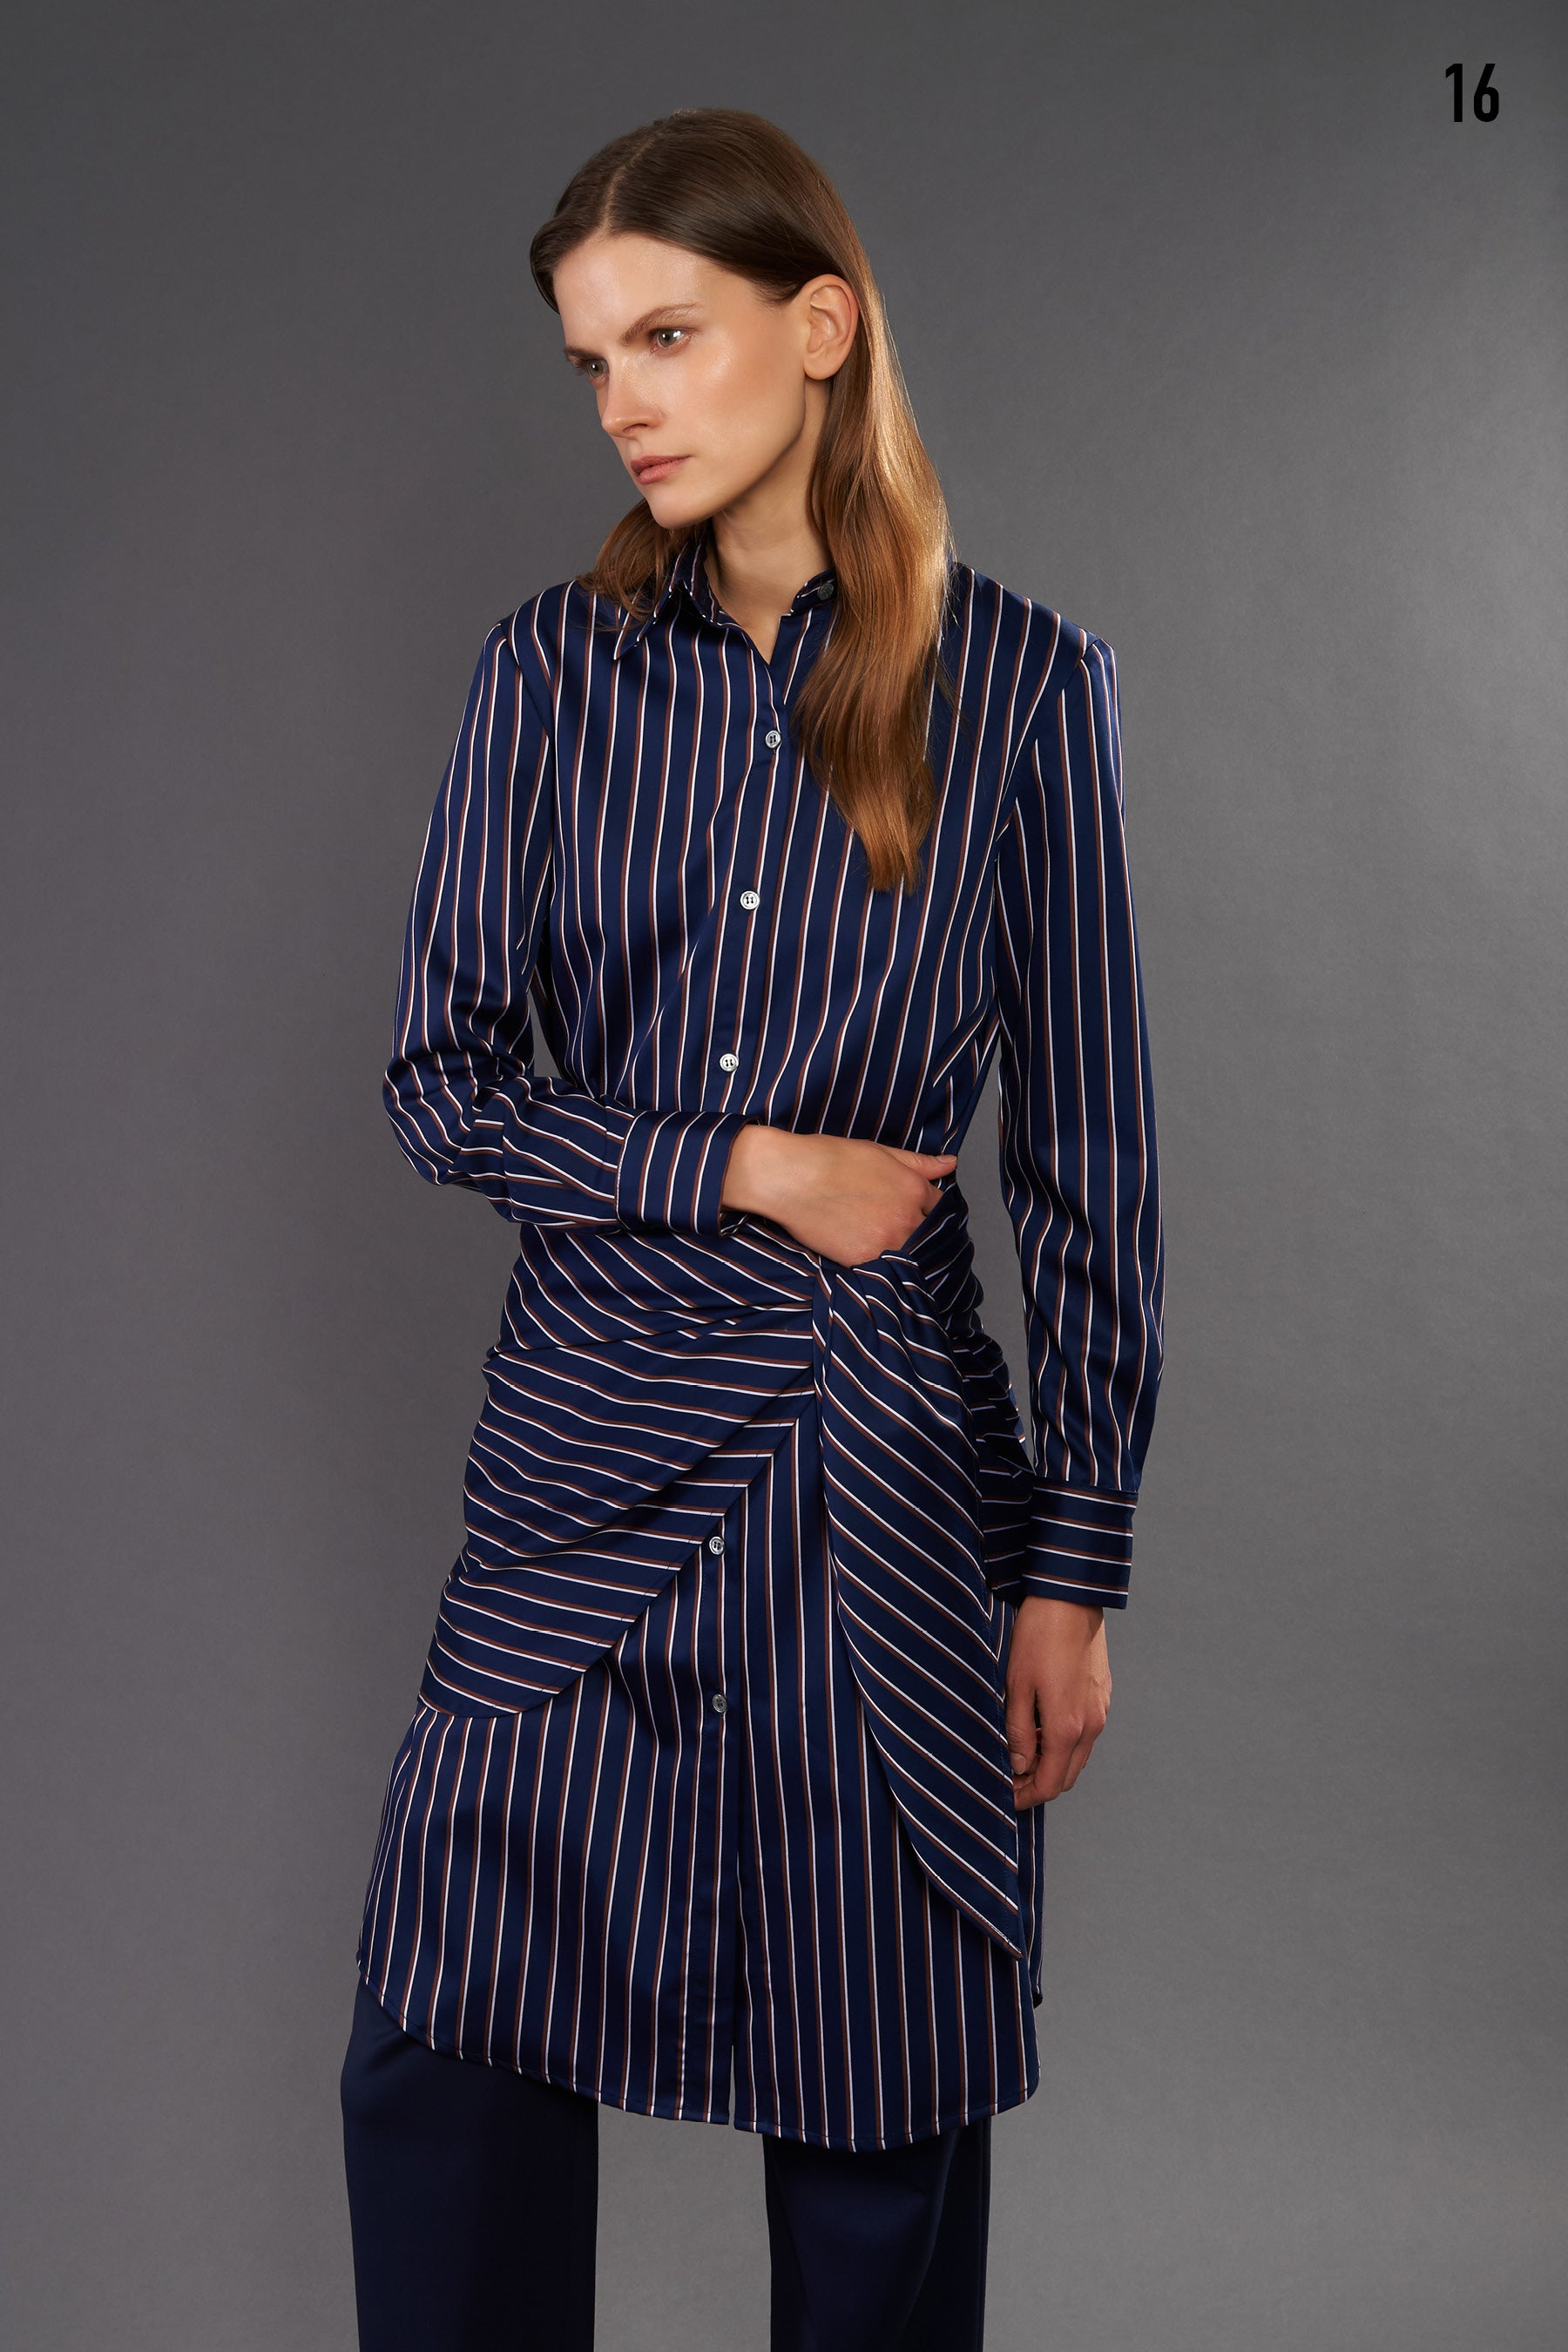 Kal Rieman Fall 2019 Lookbook Look 16